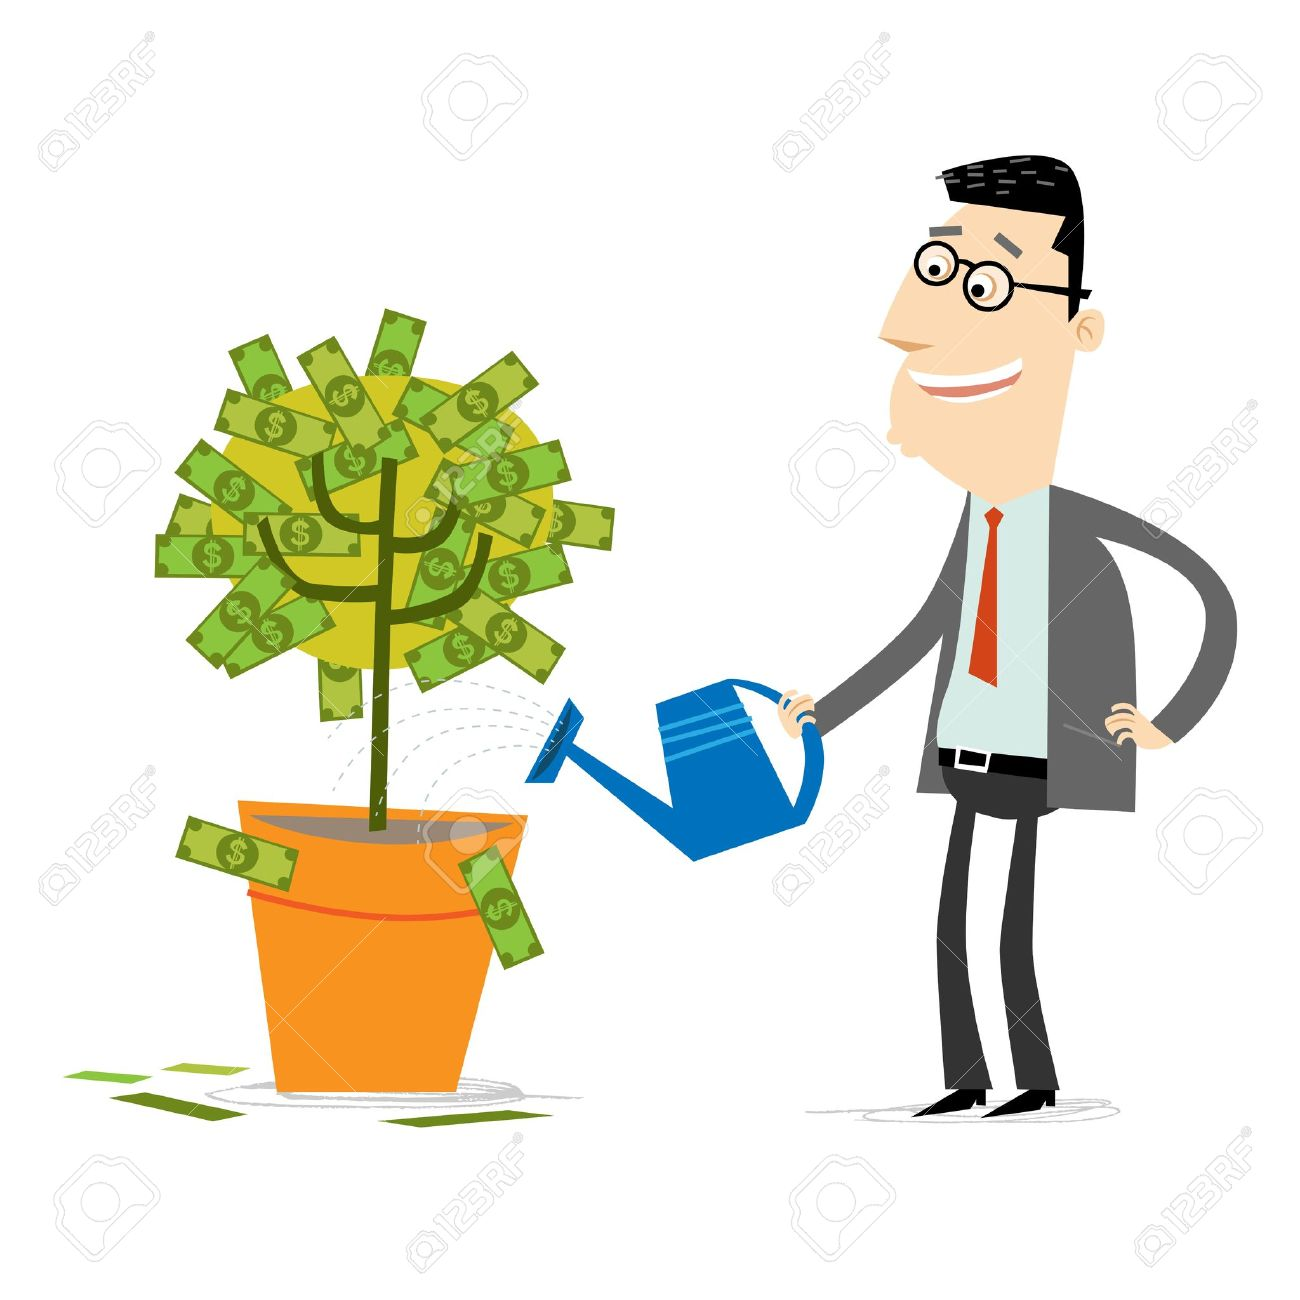 money tree royalty free cliparts vectors and stock illustration rh 123rf com Play Learn Grow Clip Art Growing Tree Clip Art